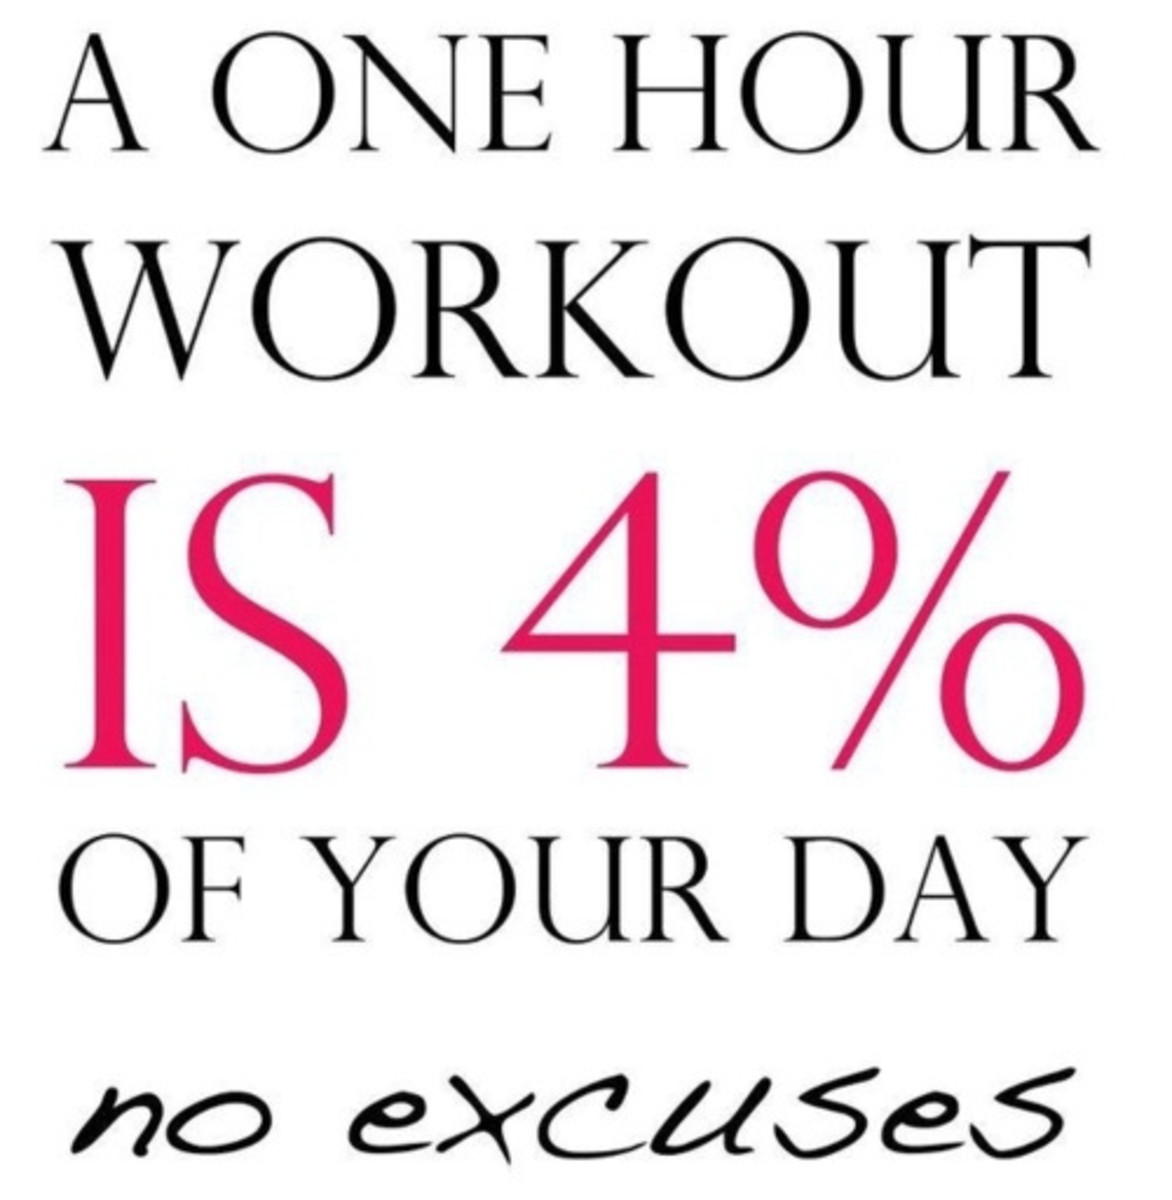 One hour workout is 4% of your day - NO  EXCUSES